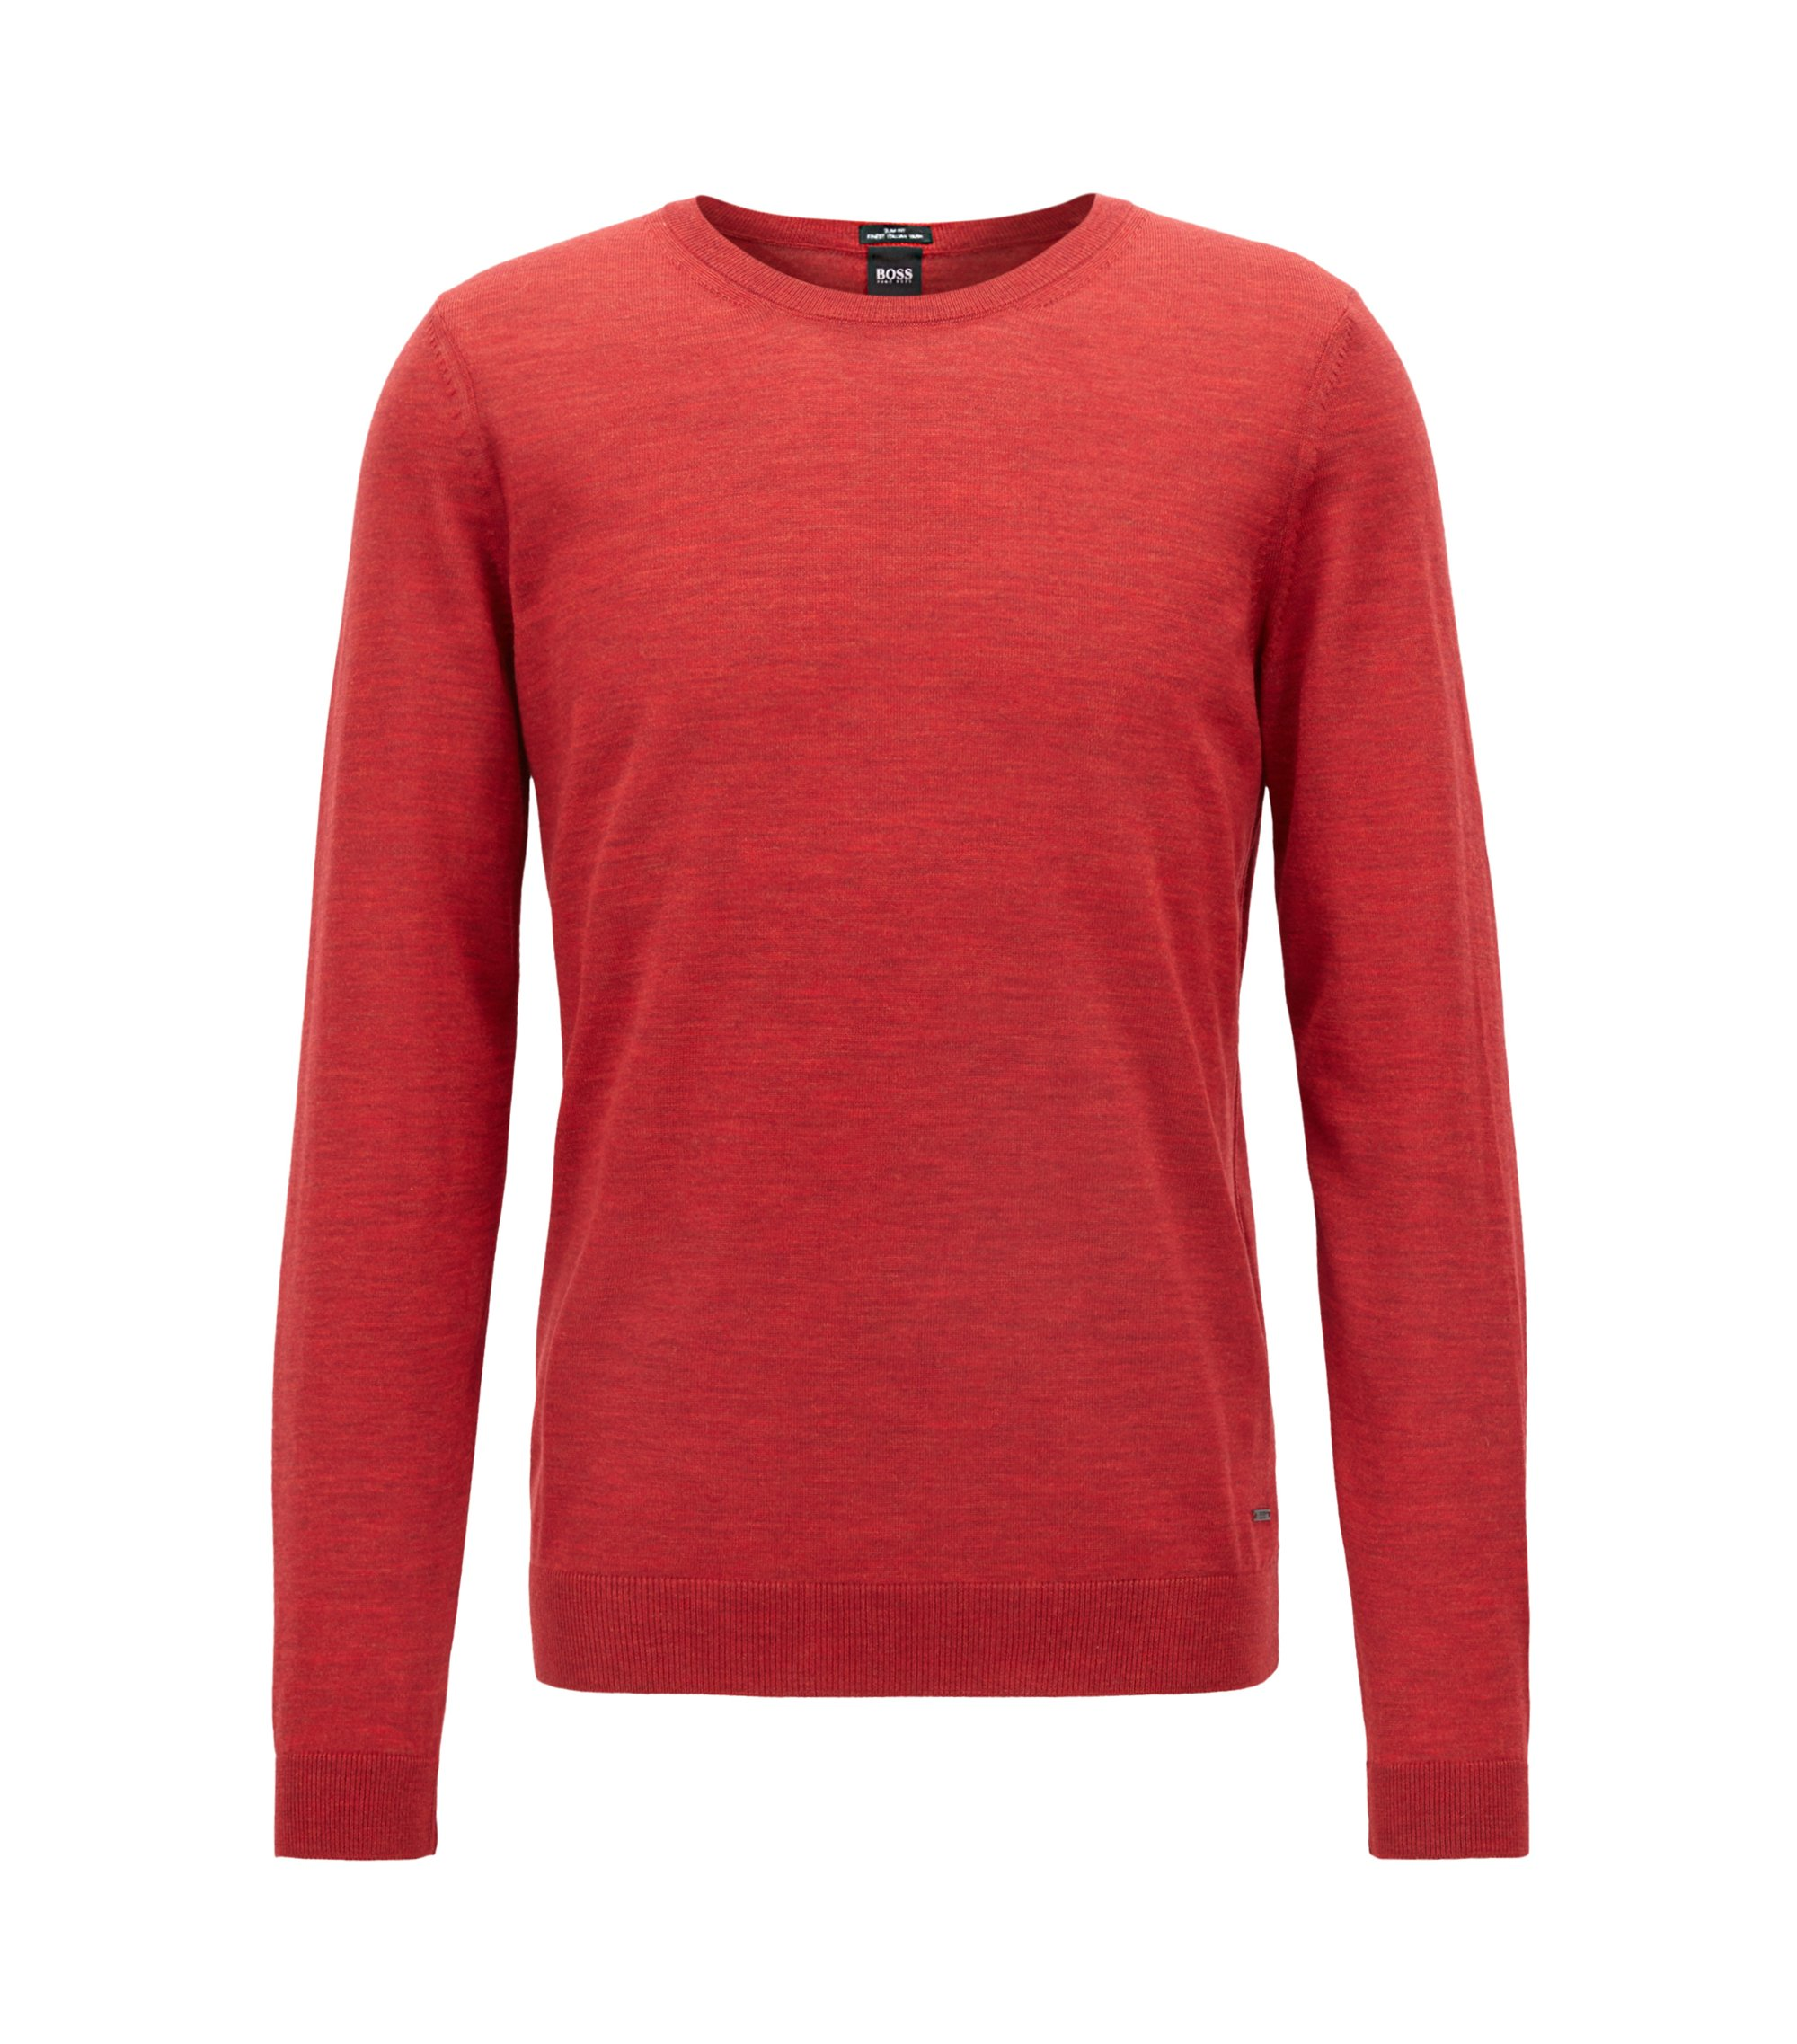 Crew-neck sweater in virgin wool, Red